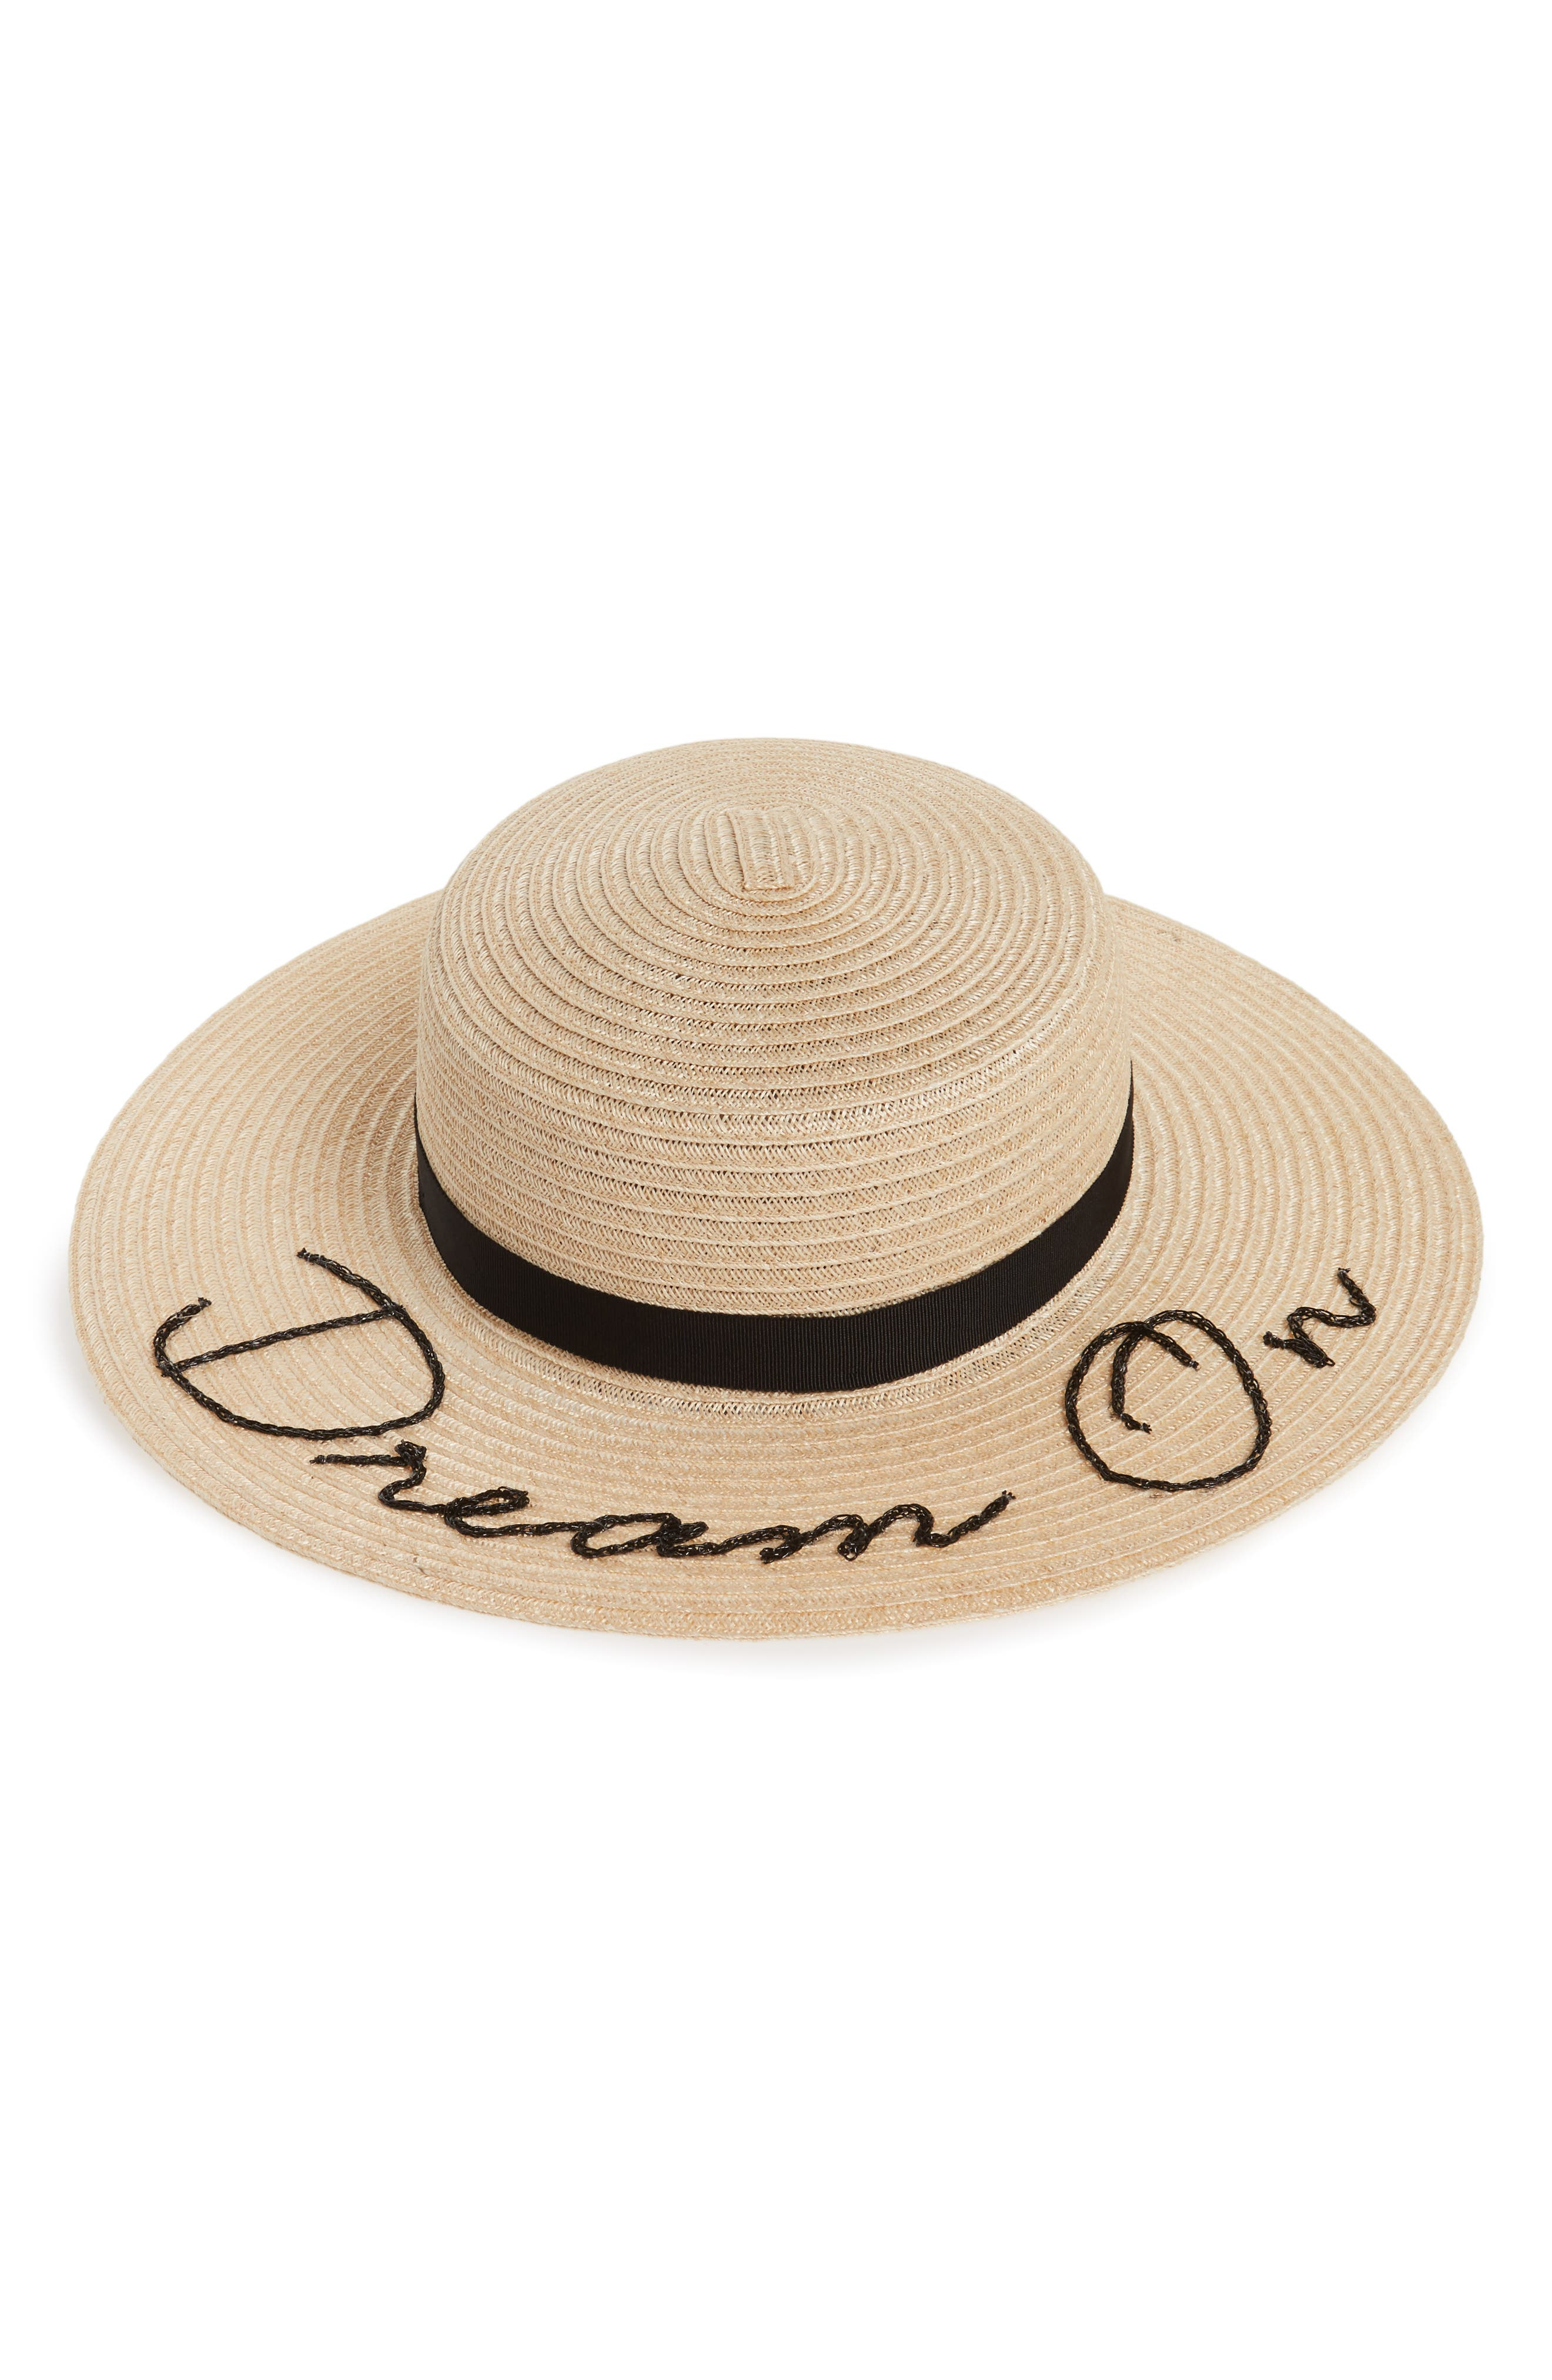 Colette Dream On Boater Hat,                             Main thumbnail 1, color,                             Natural